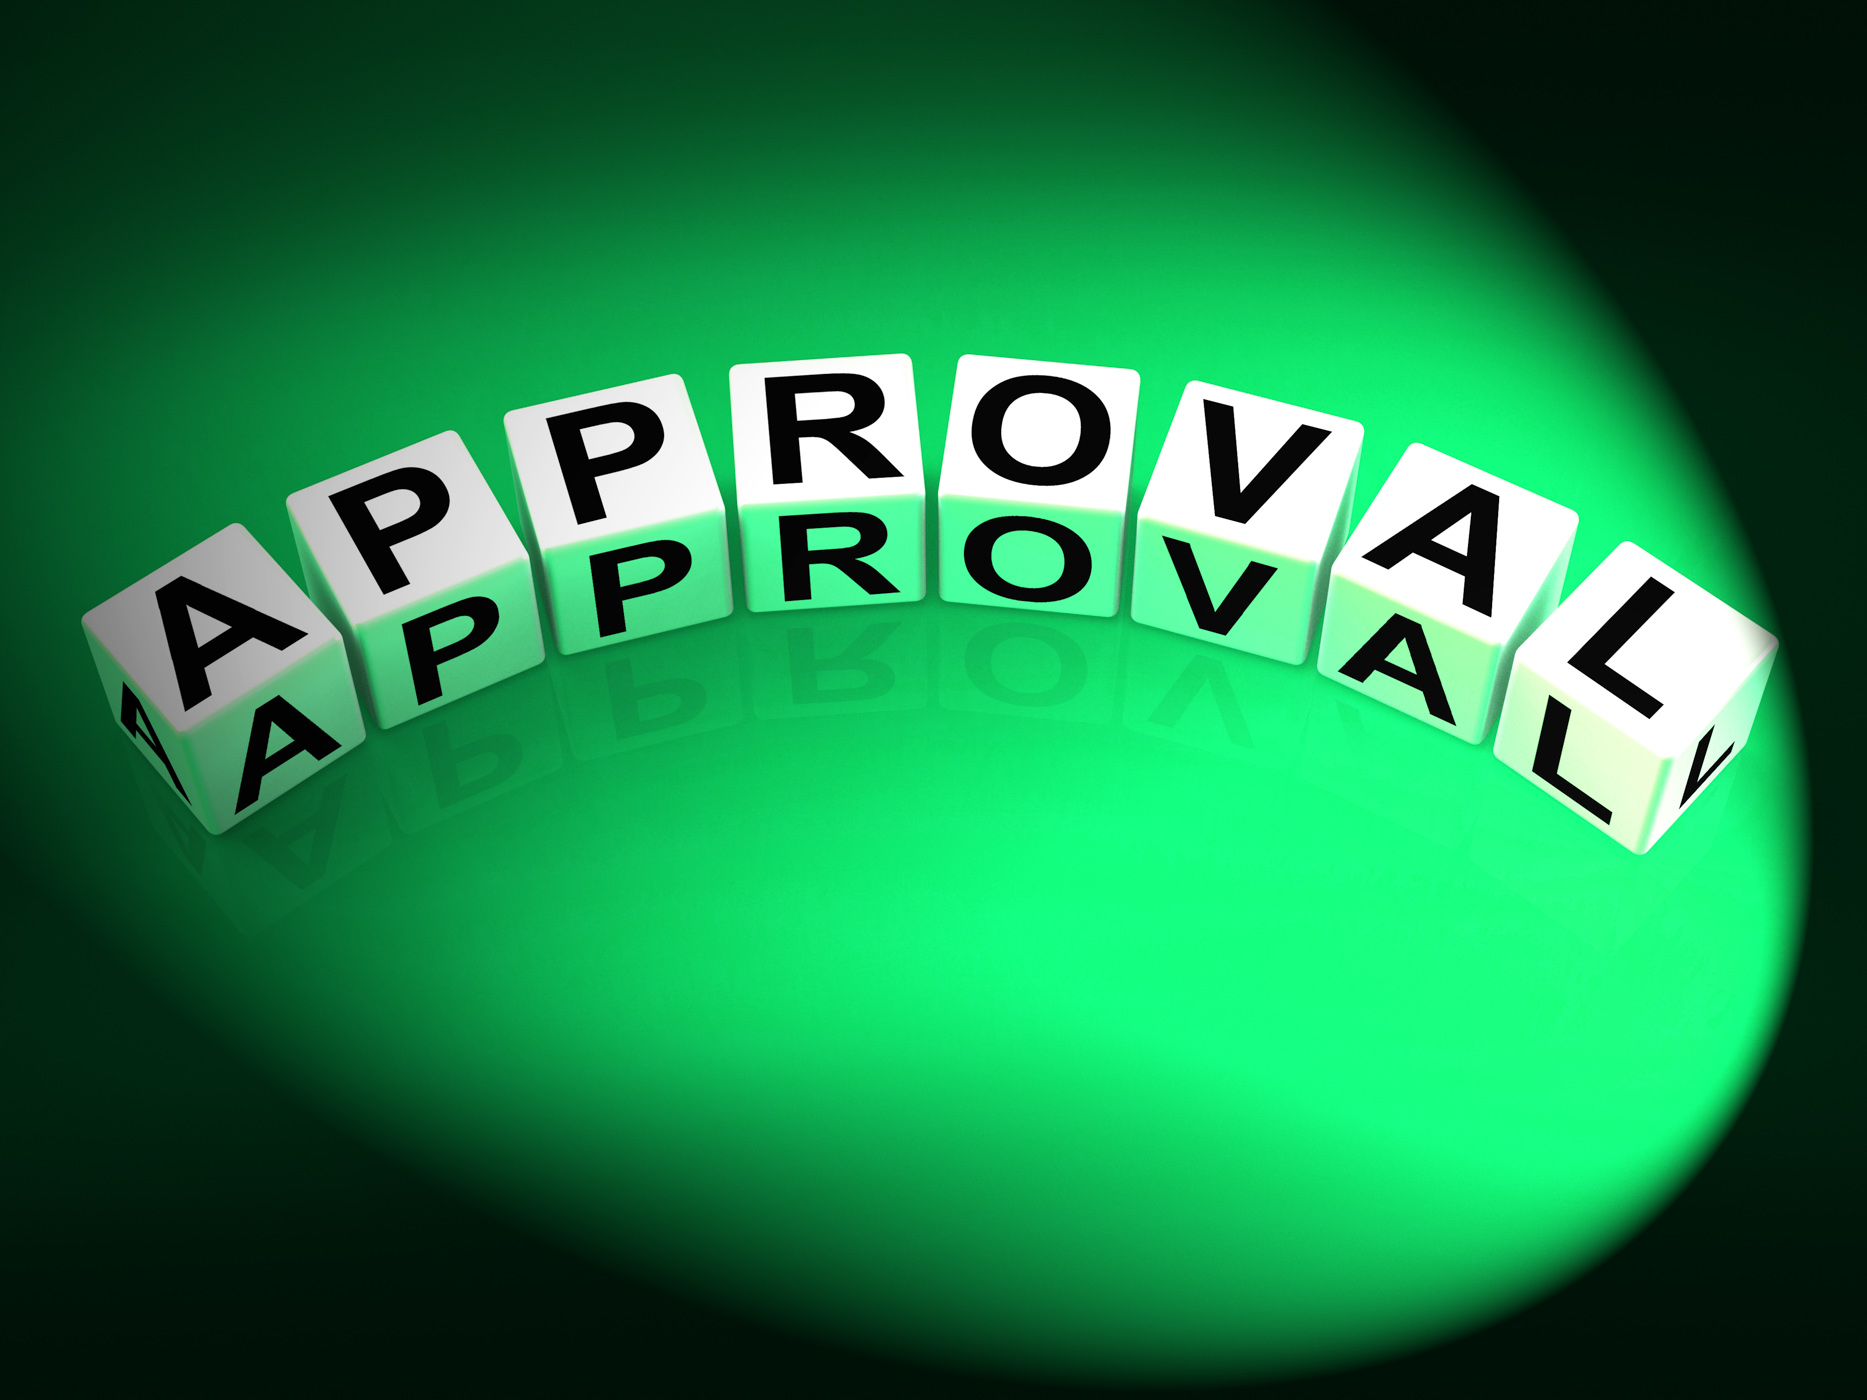 Approval Dice Show Validation Acceptance and Approved, Permit, Validate, Validation, Verified, HQ Photo